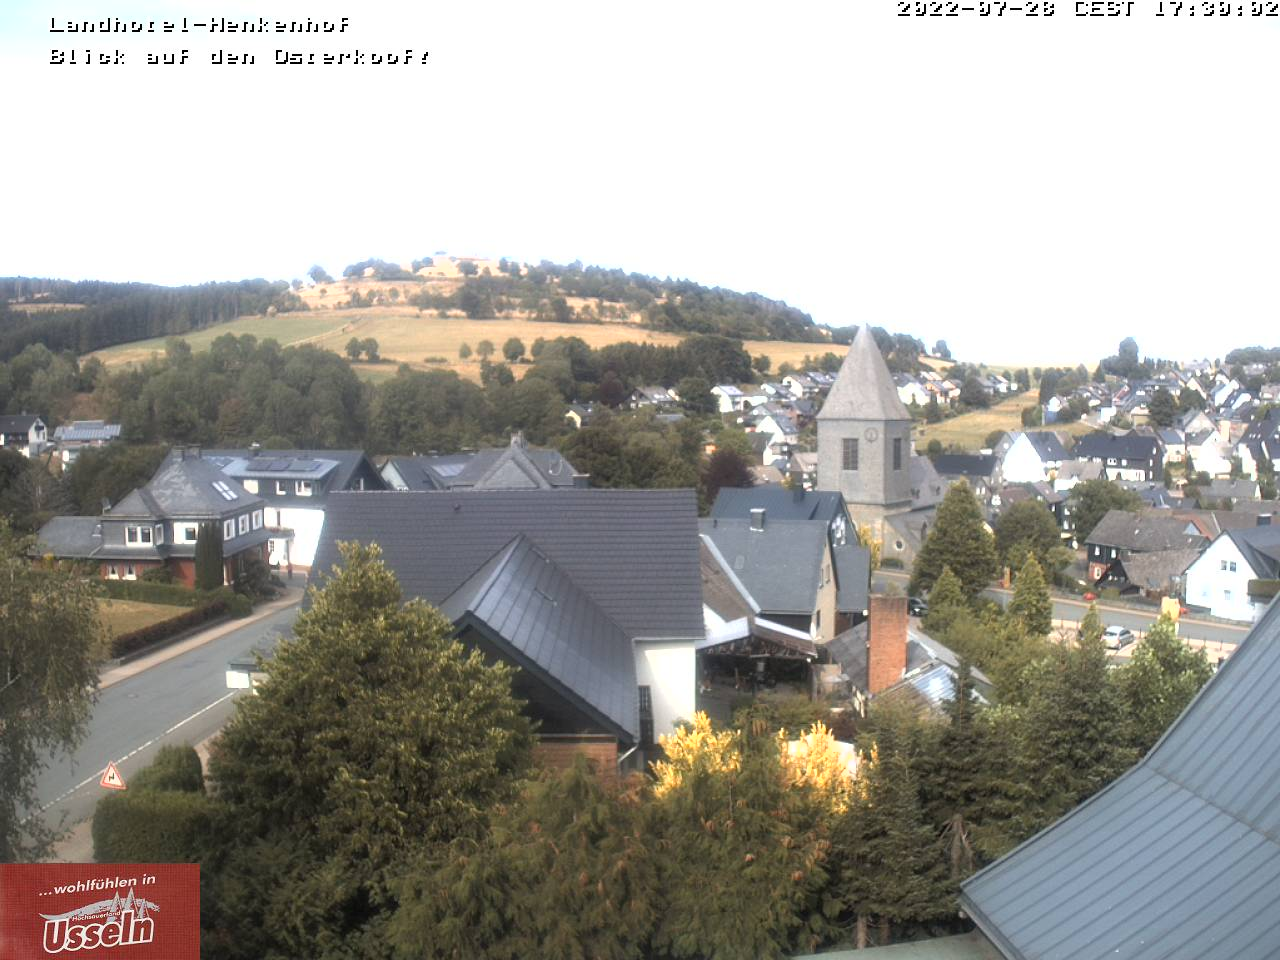 Willingen Wetter Webcam